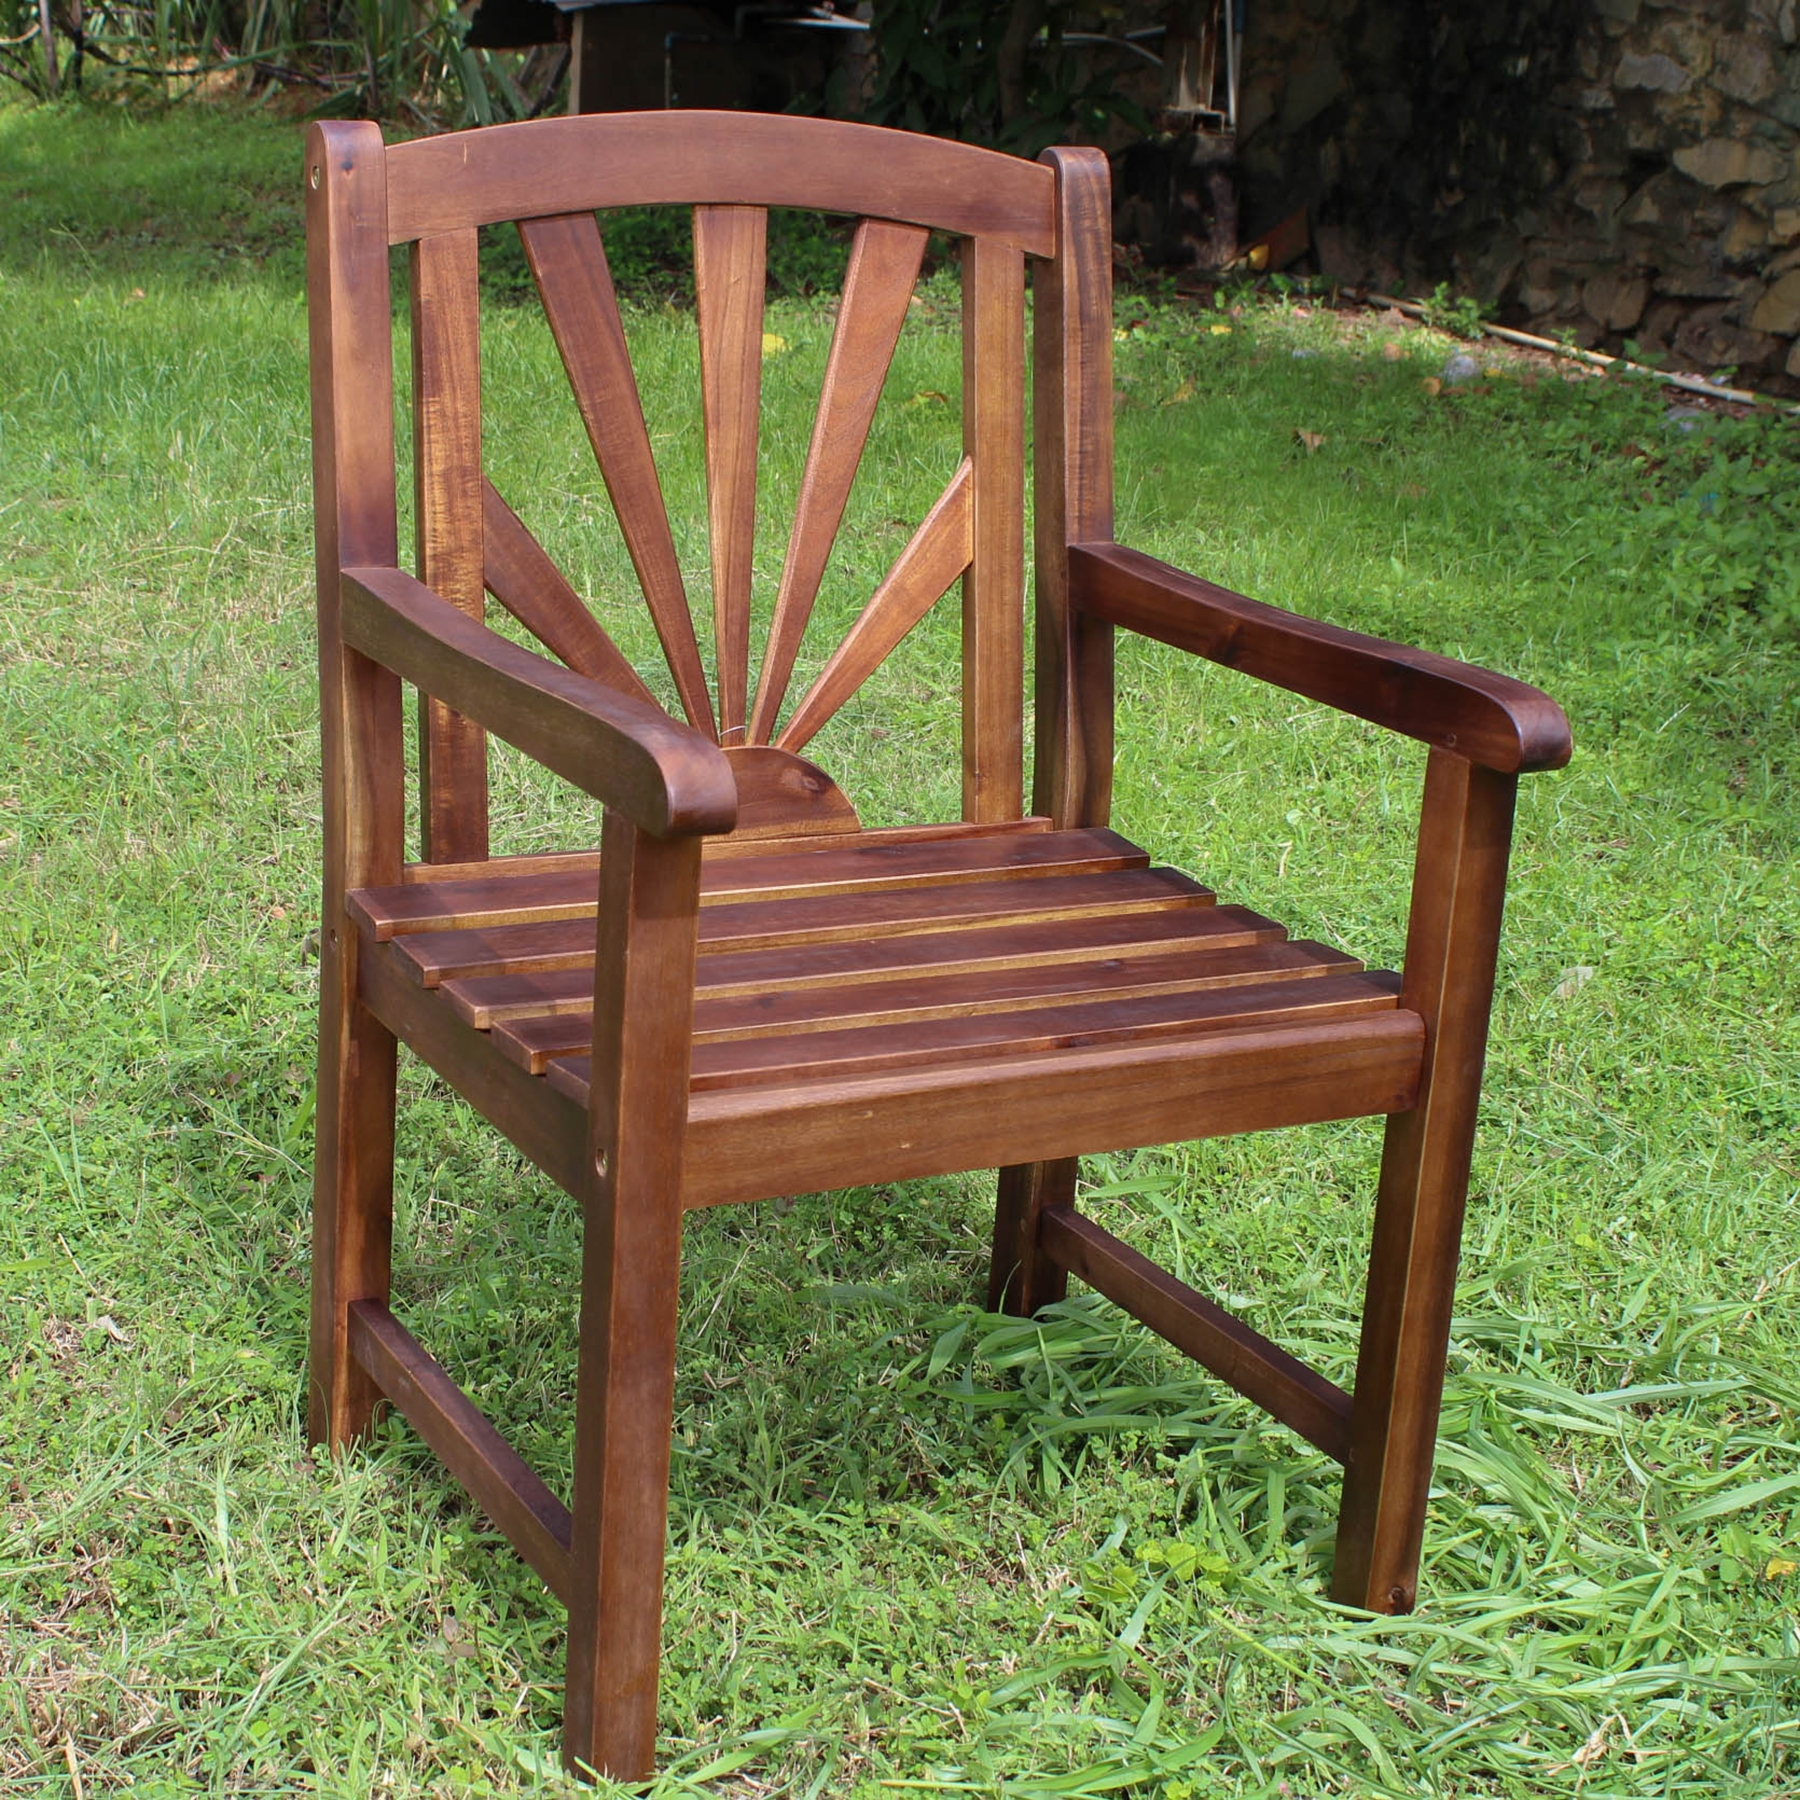 Sapporo Wooden Outdoor Armchair - INTC-VF-4207